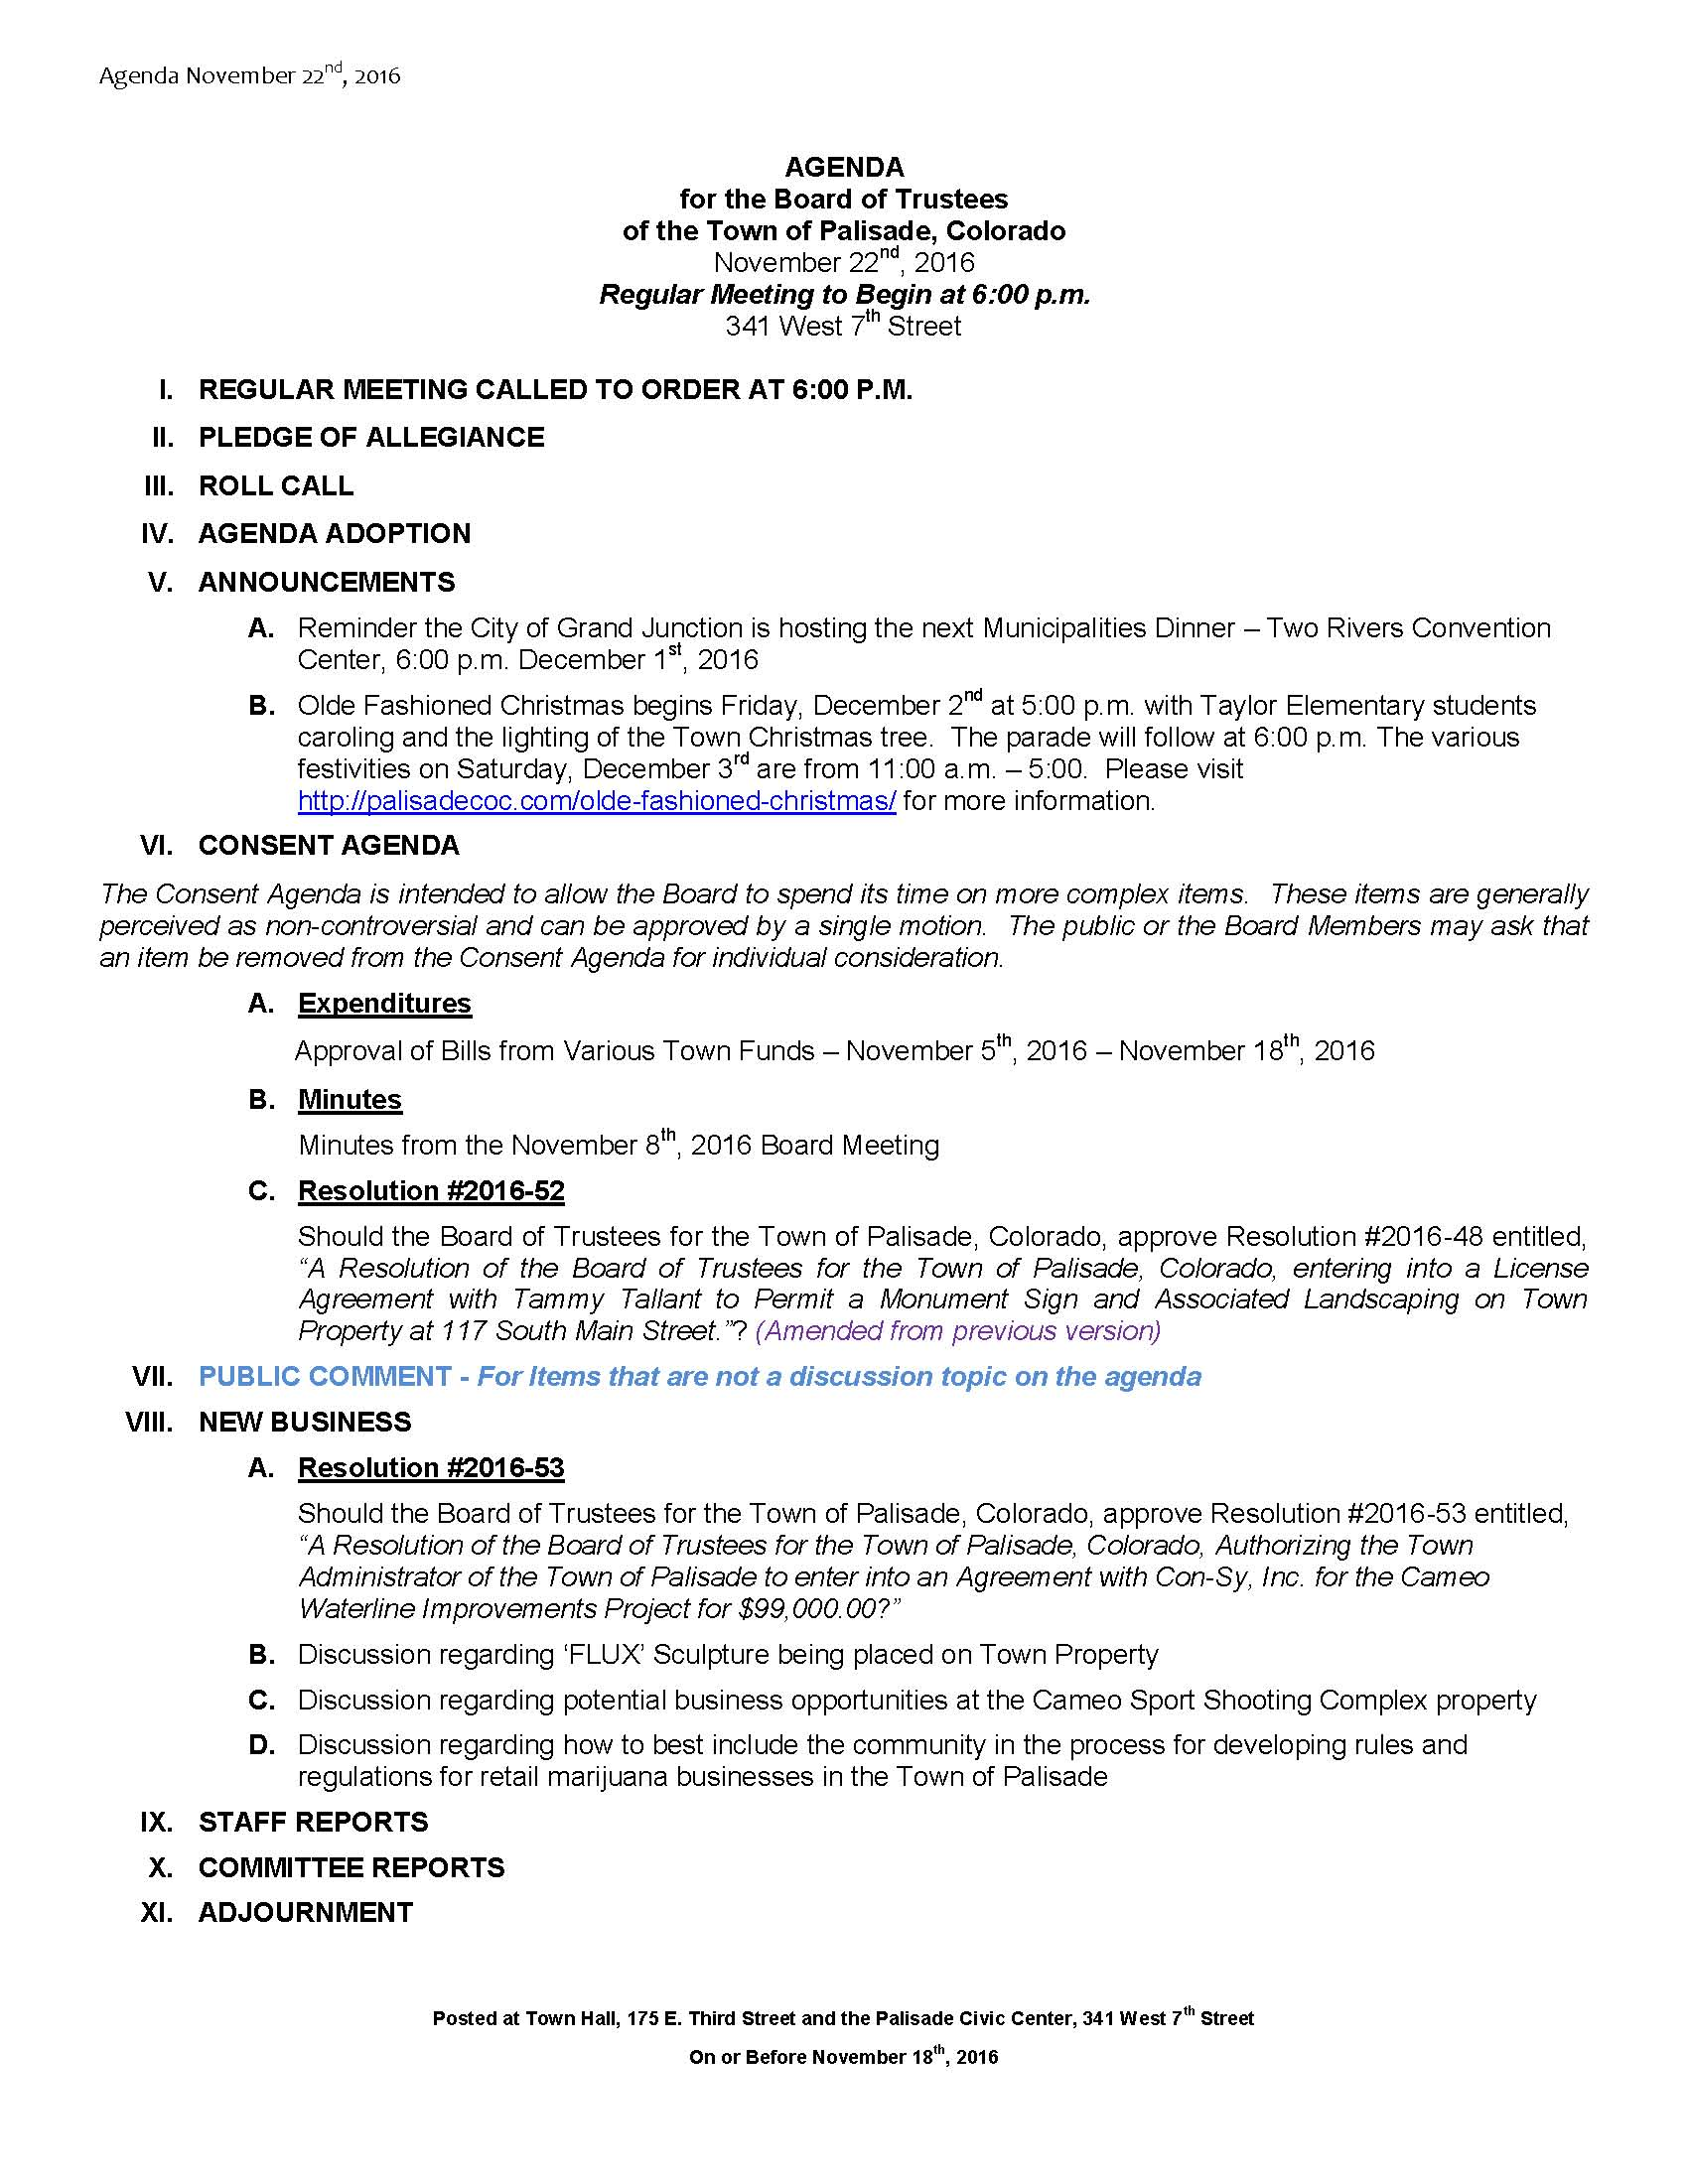 November 22nd 2016 Board Meeting Agenda